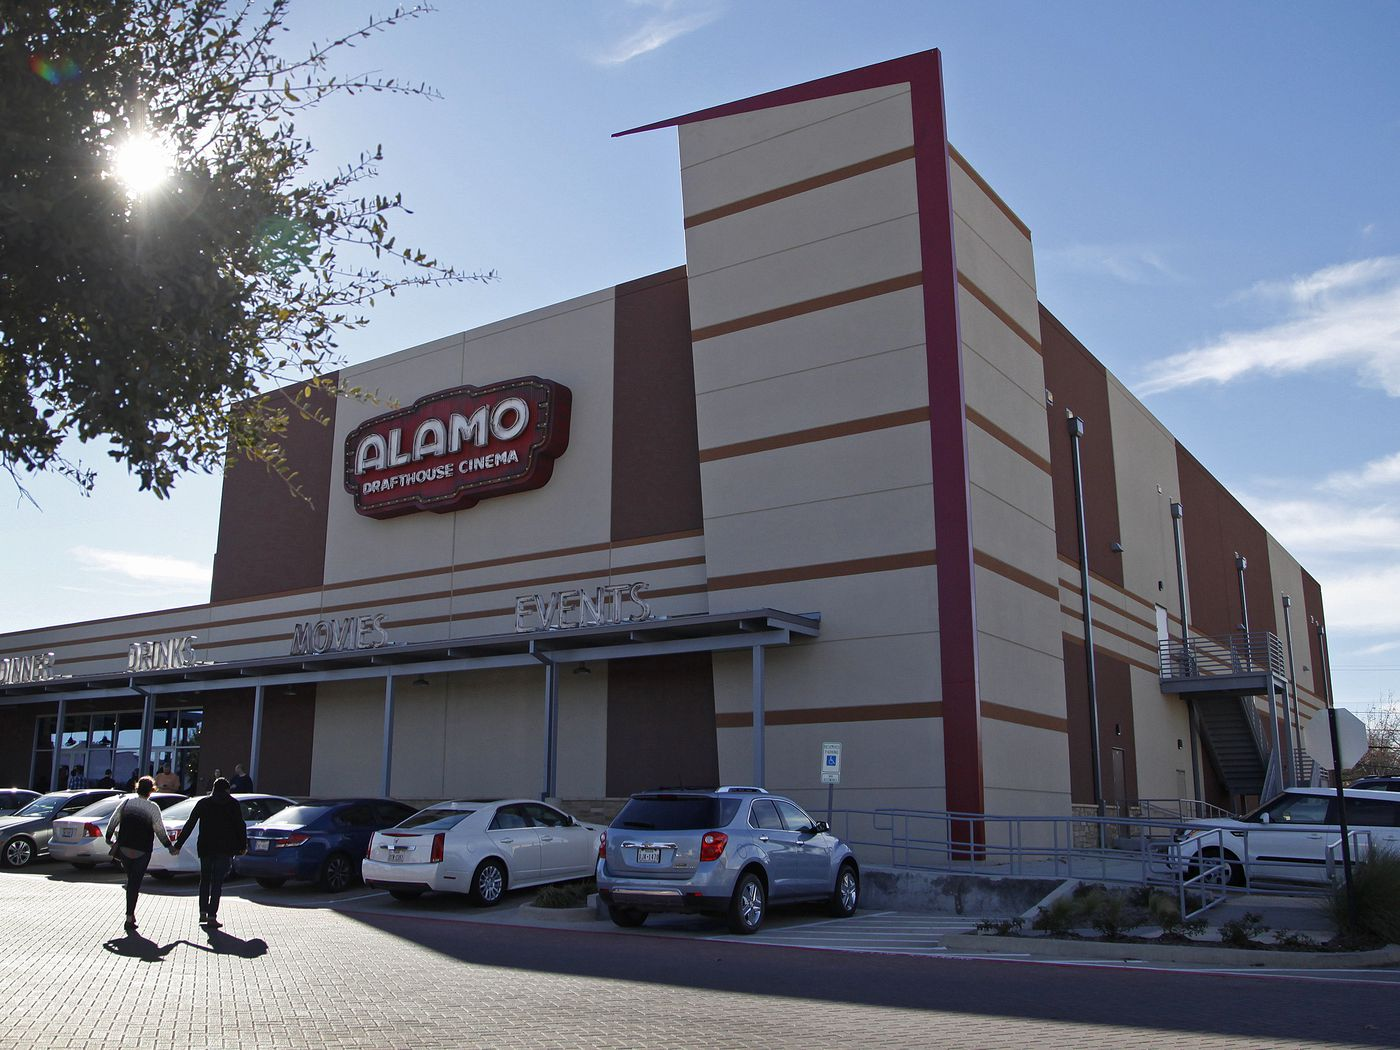 Alamo Drafthouse theaters will launch an unlimited movies